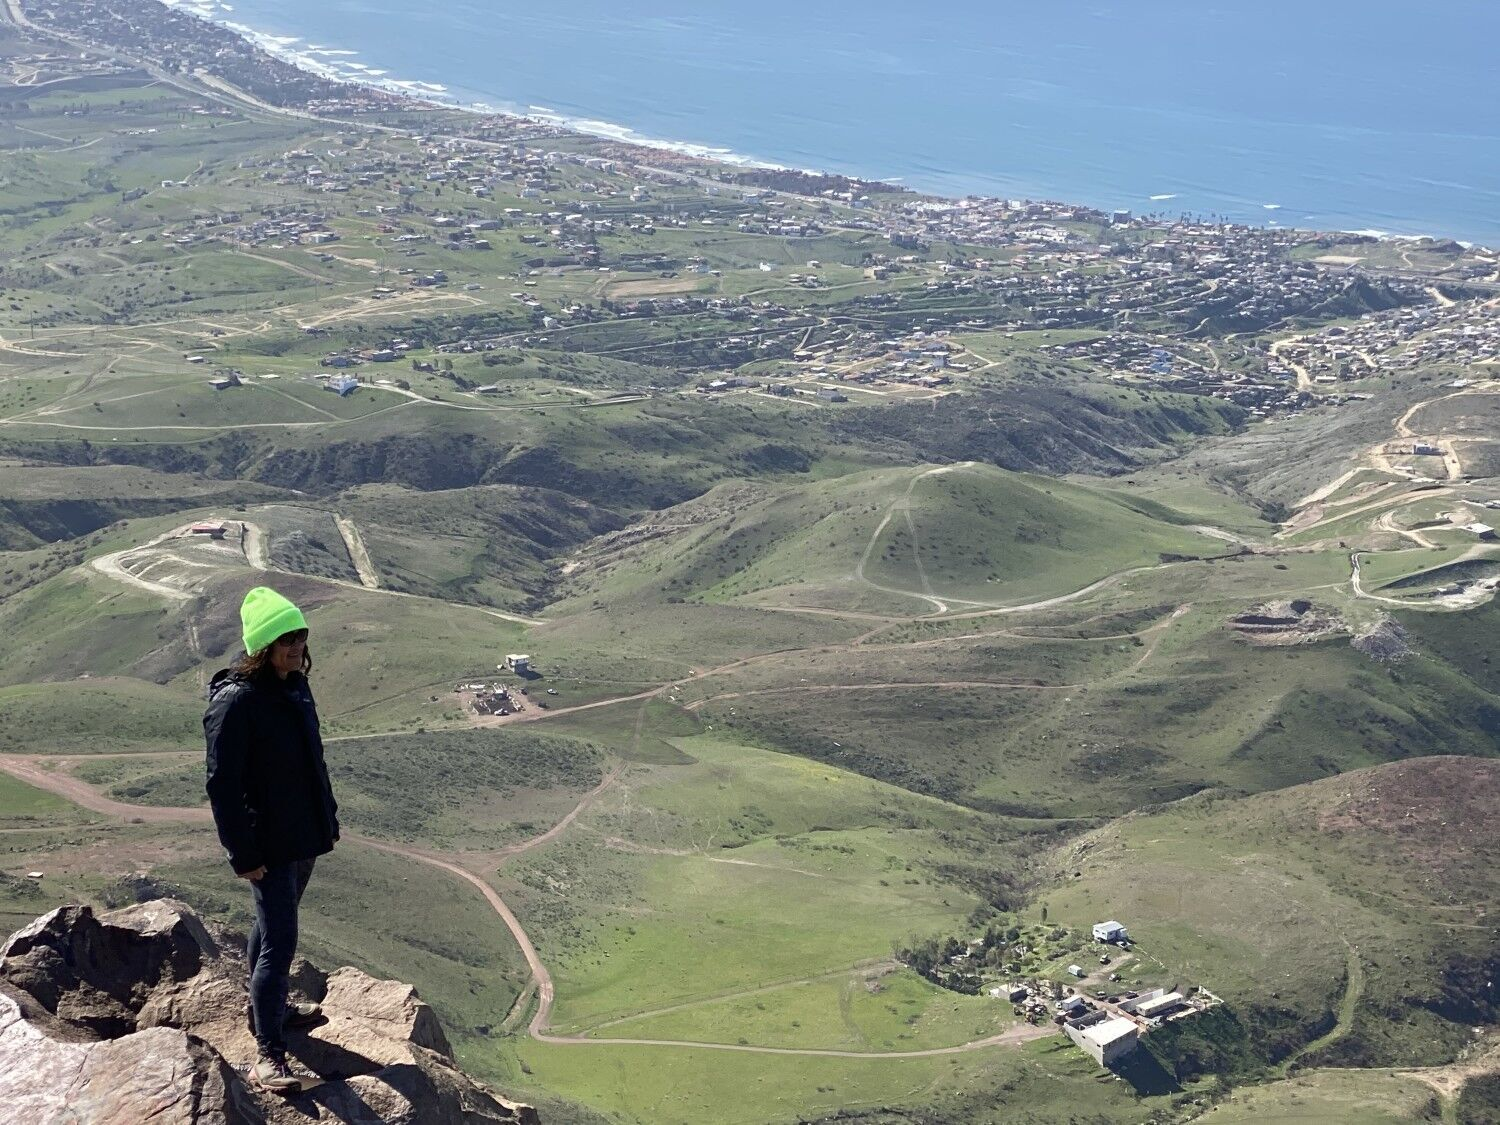 Take a hike: Mexico launches ambitious effort to mark and map its trails